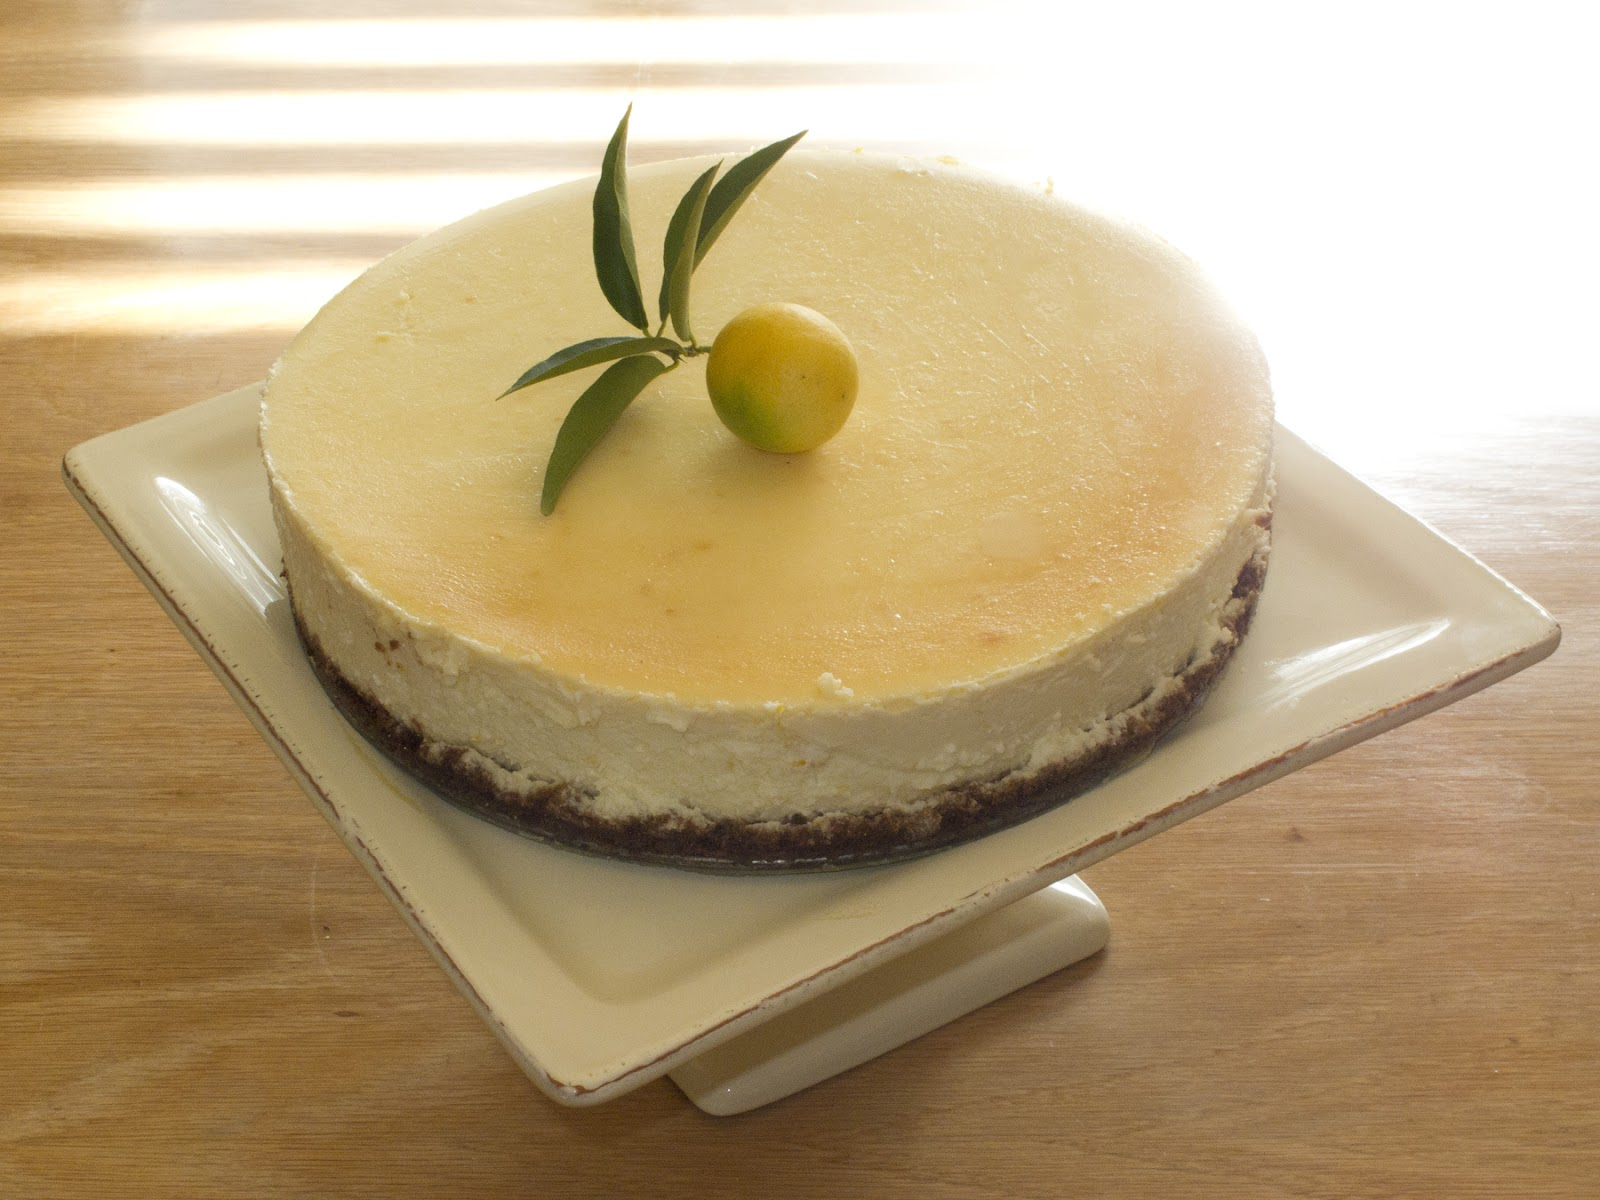 Lemon+Cheesecake+with+Gingersnap+Crust.jpg